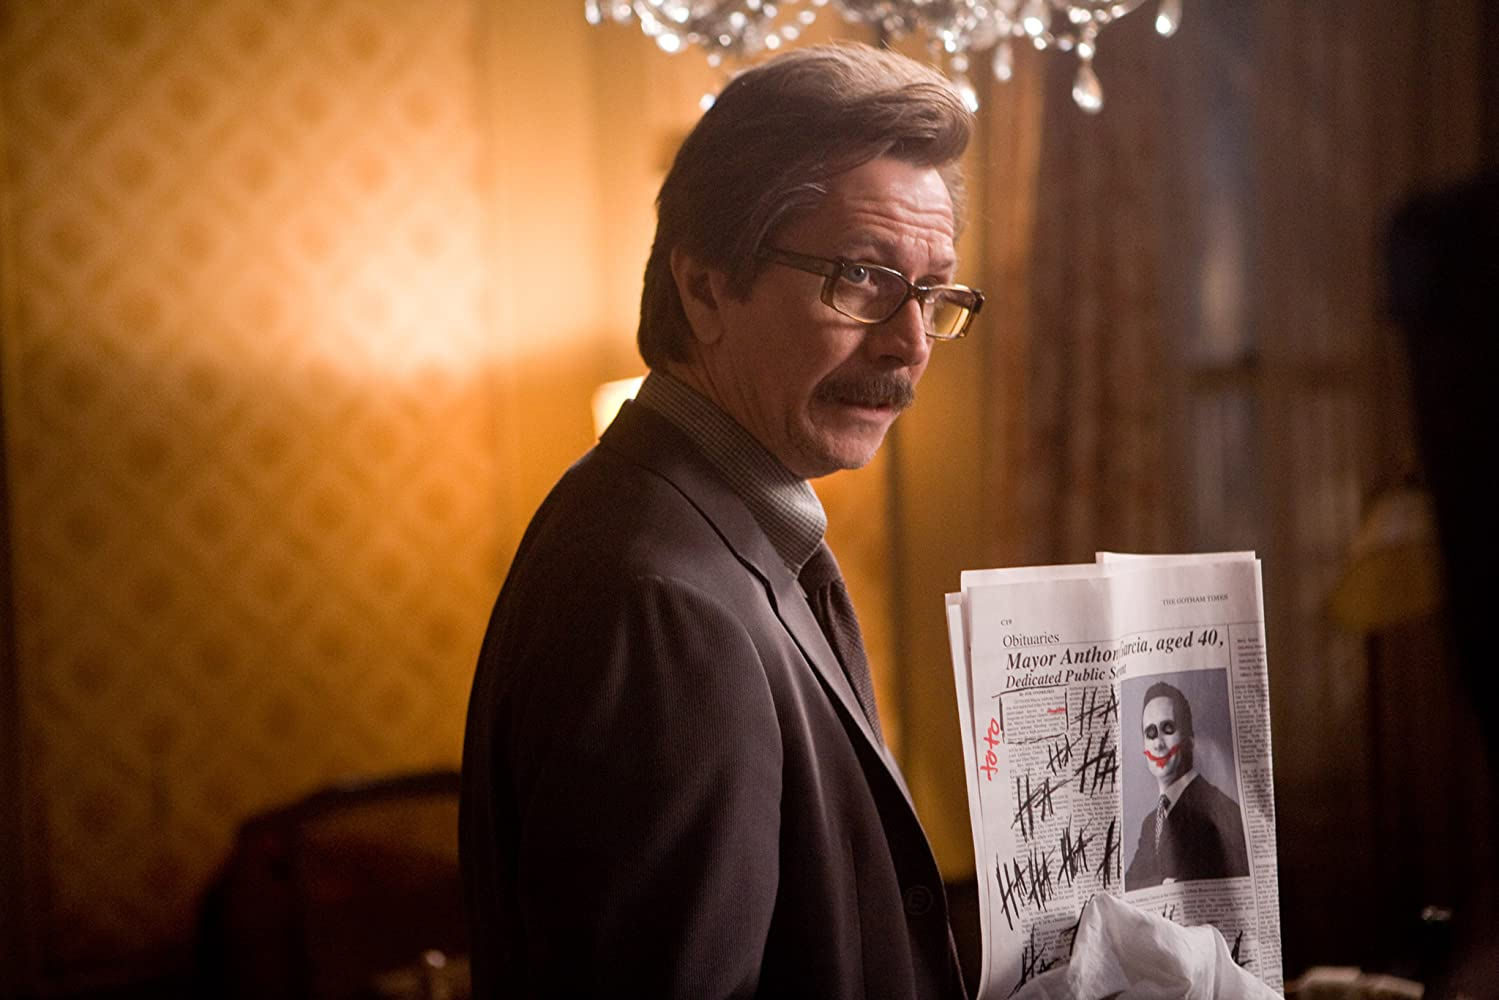 Gary Oldman in The Dark Knight (2008)